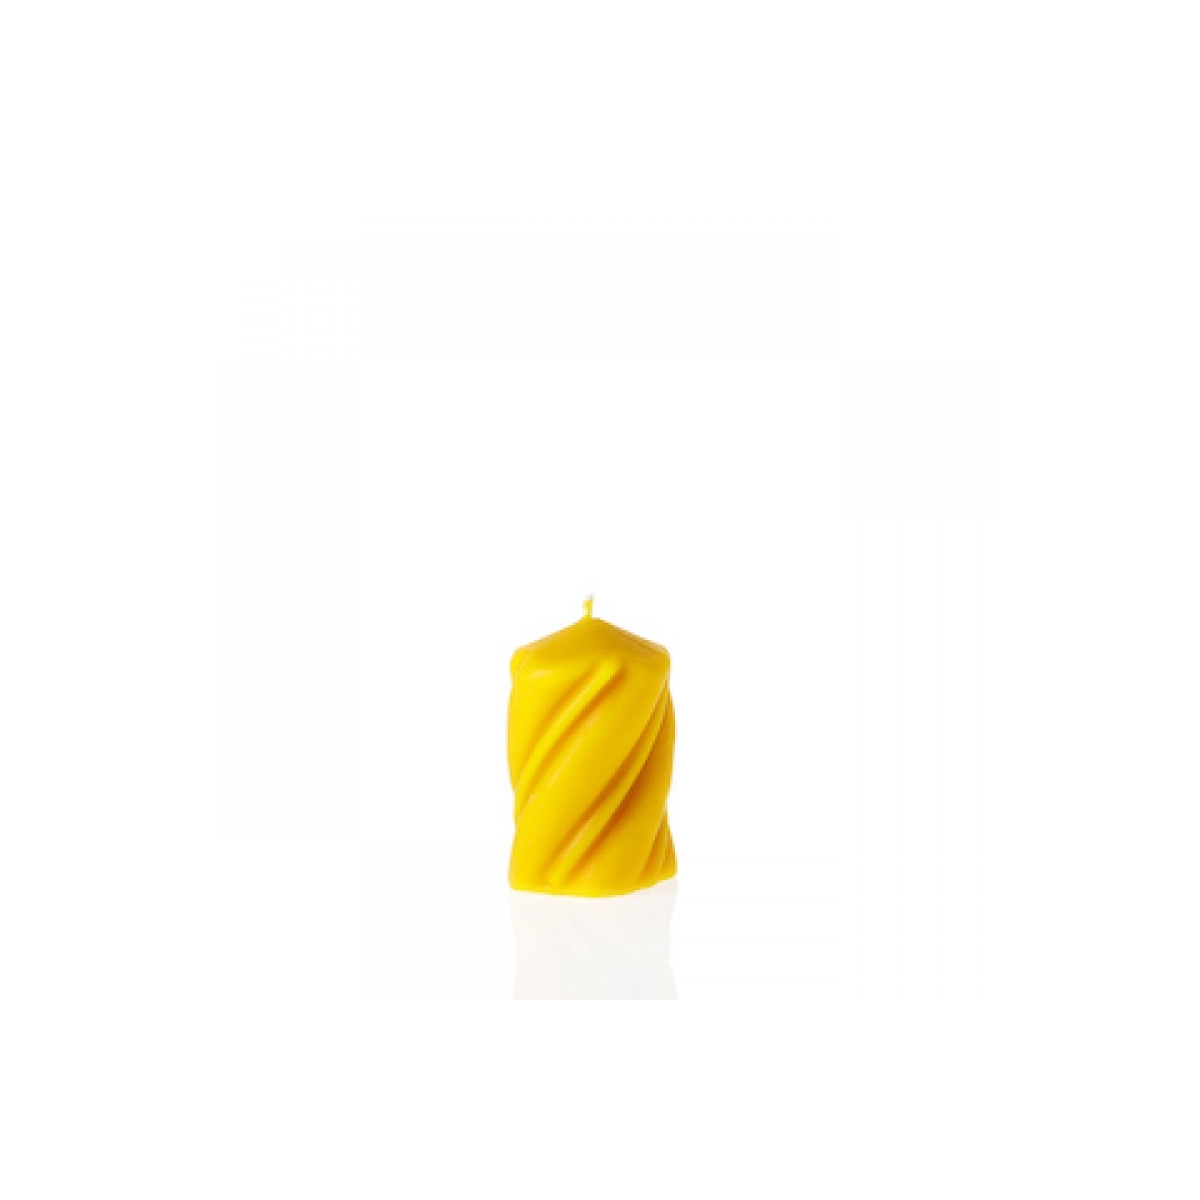 Decorative Beeswax Candle - 100% Pure/Organic